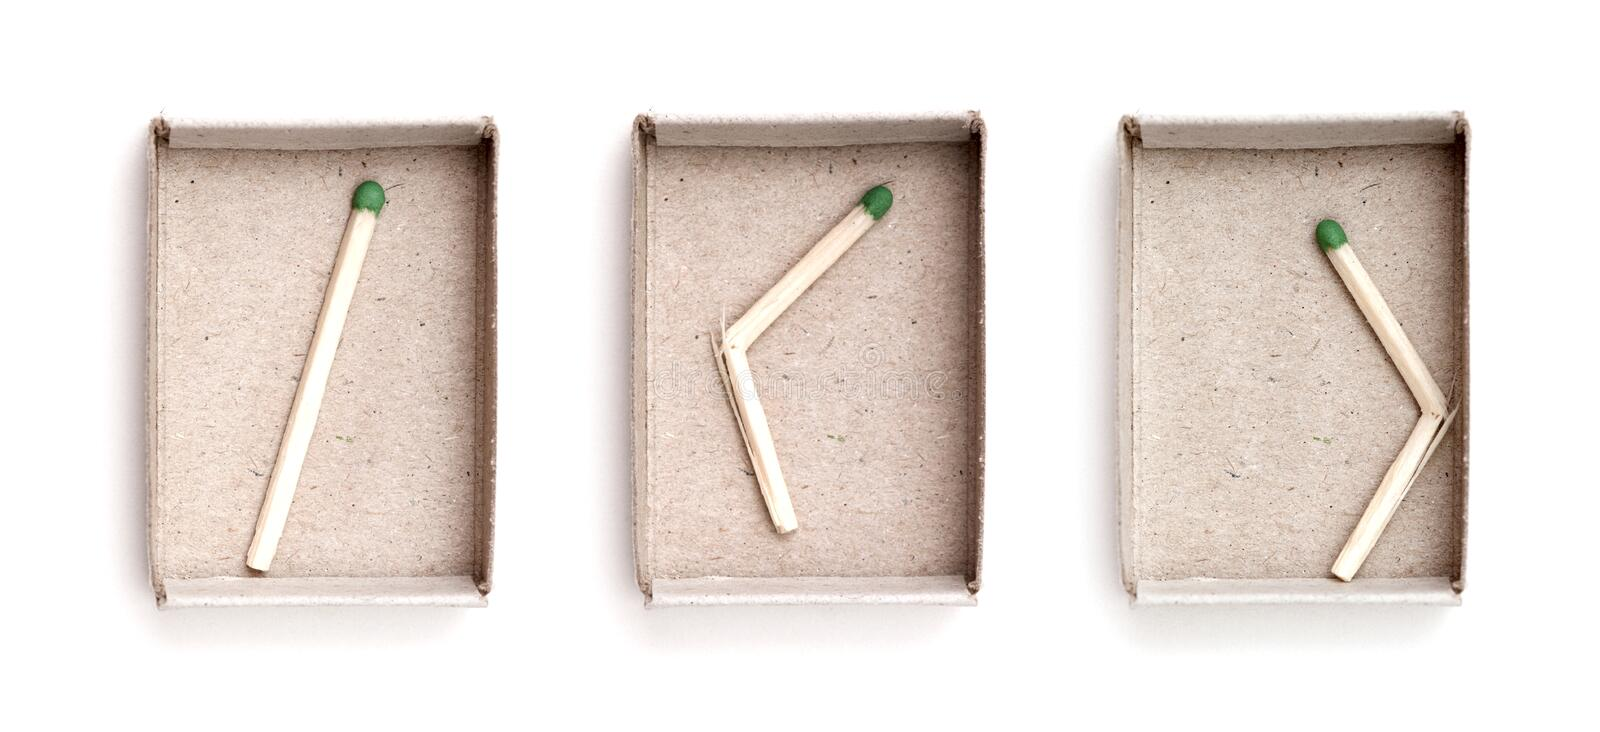 Matchbox and last match royalty free stock photography